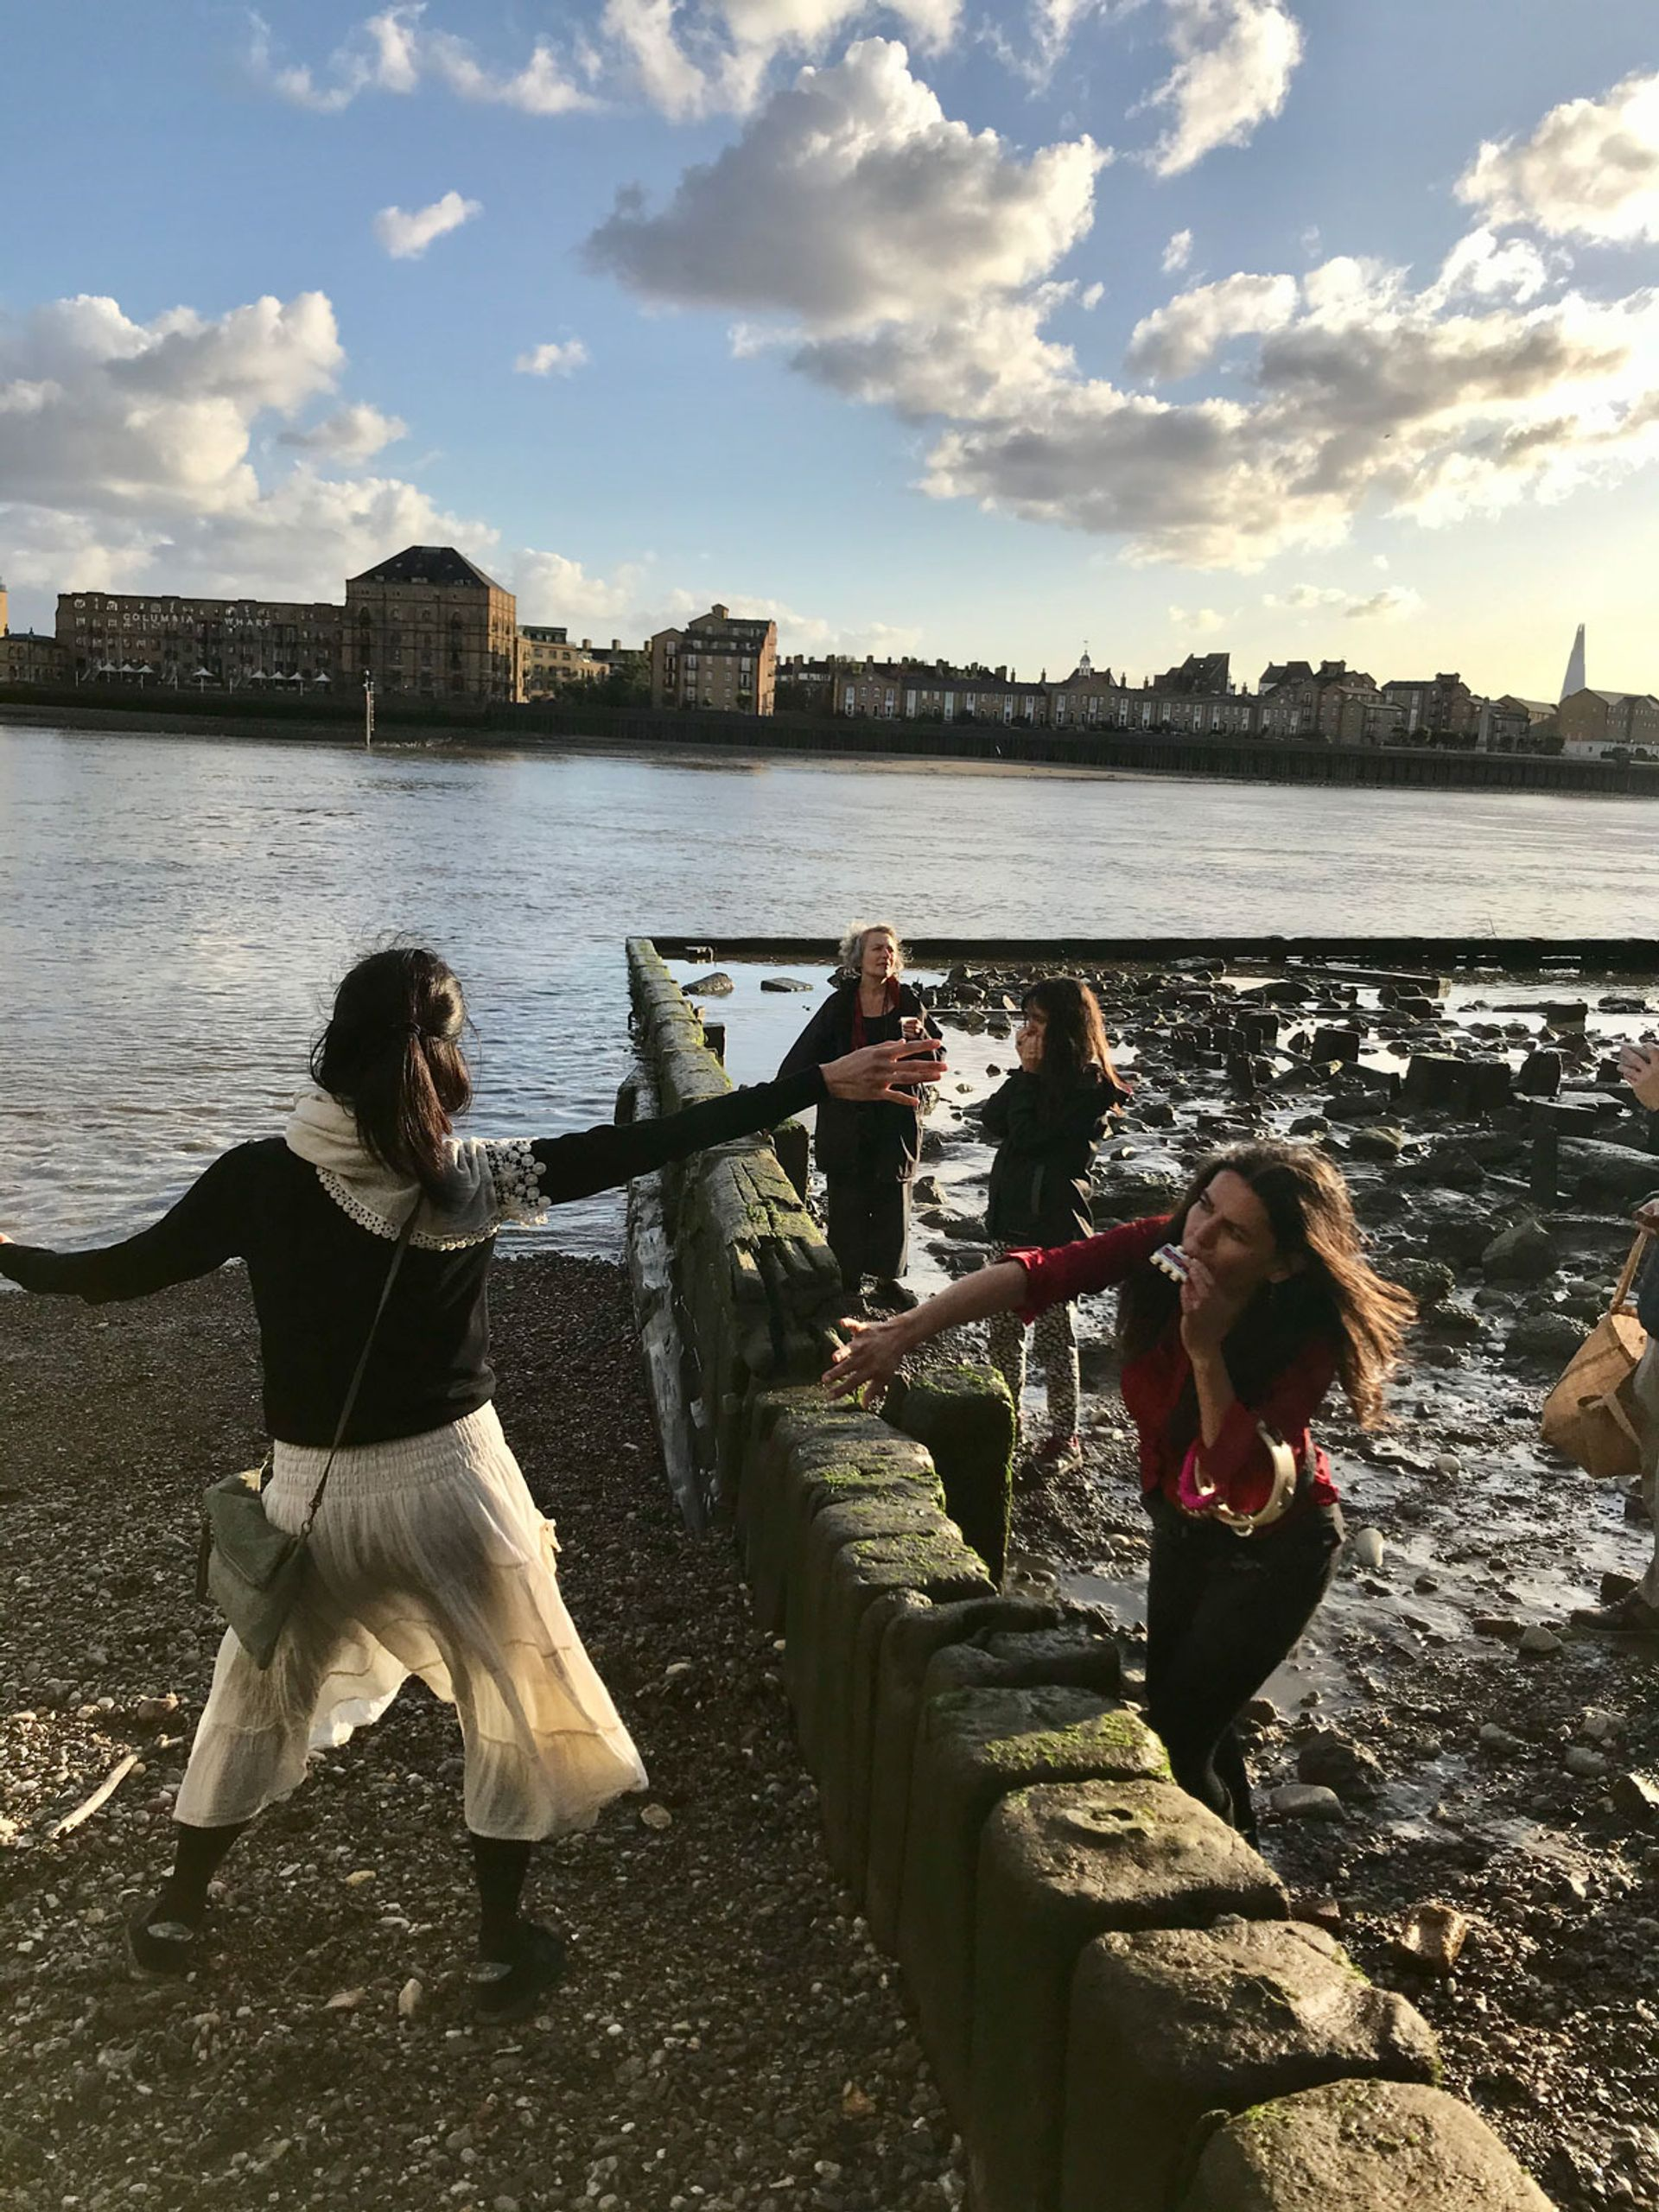 Luna Montenegro and friends  performing music and incantations by the River Thames Photo: Louisa Buck